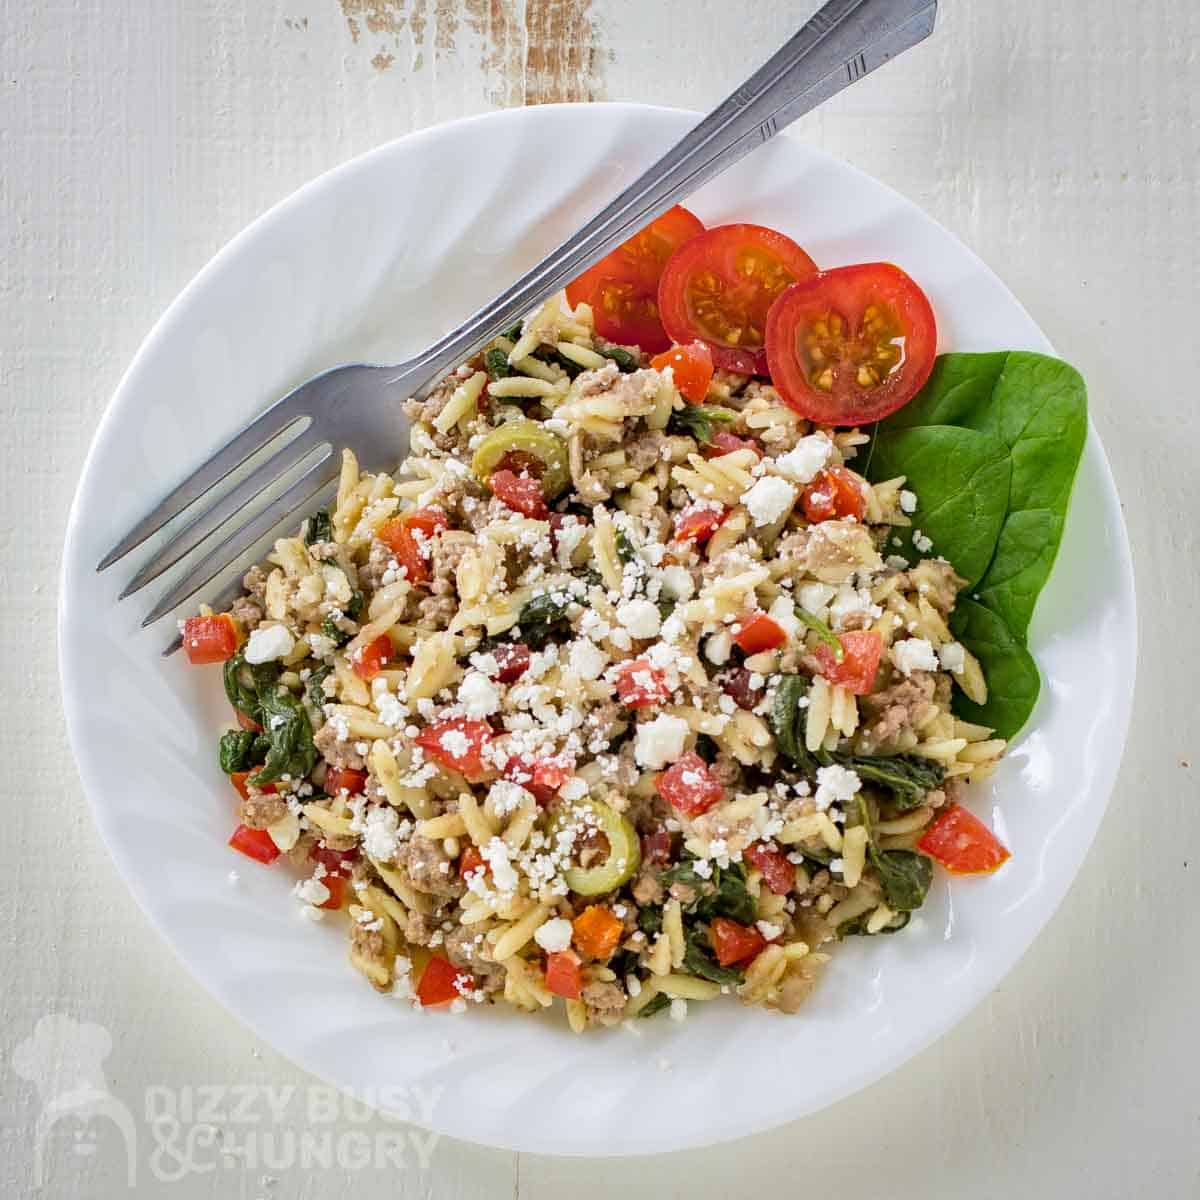 Overhead shot of ground beef orzo pasta in a white bowl with sliced tomatoes, spinach and a fork on the side.